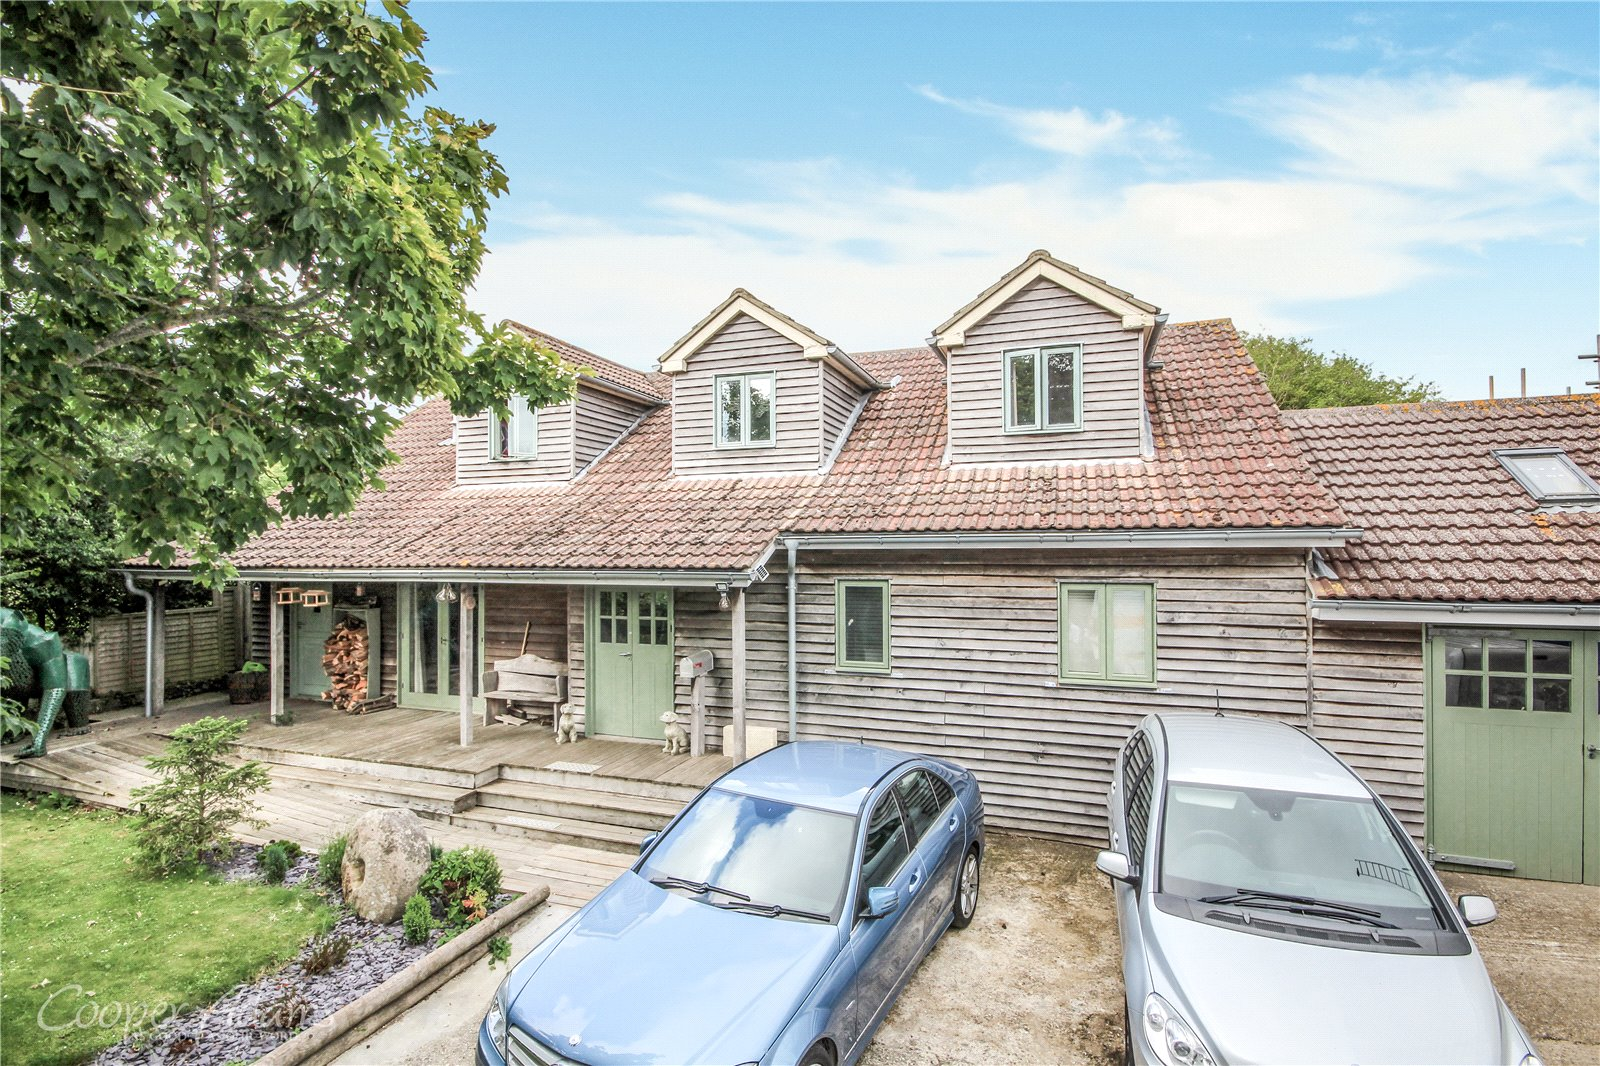 5 bed house for sale in Dappers Lane, Angmering, BN16